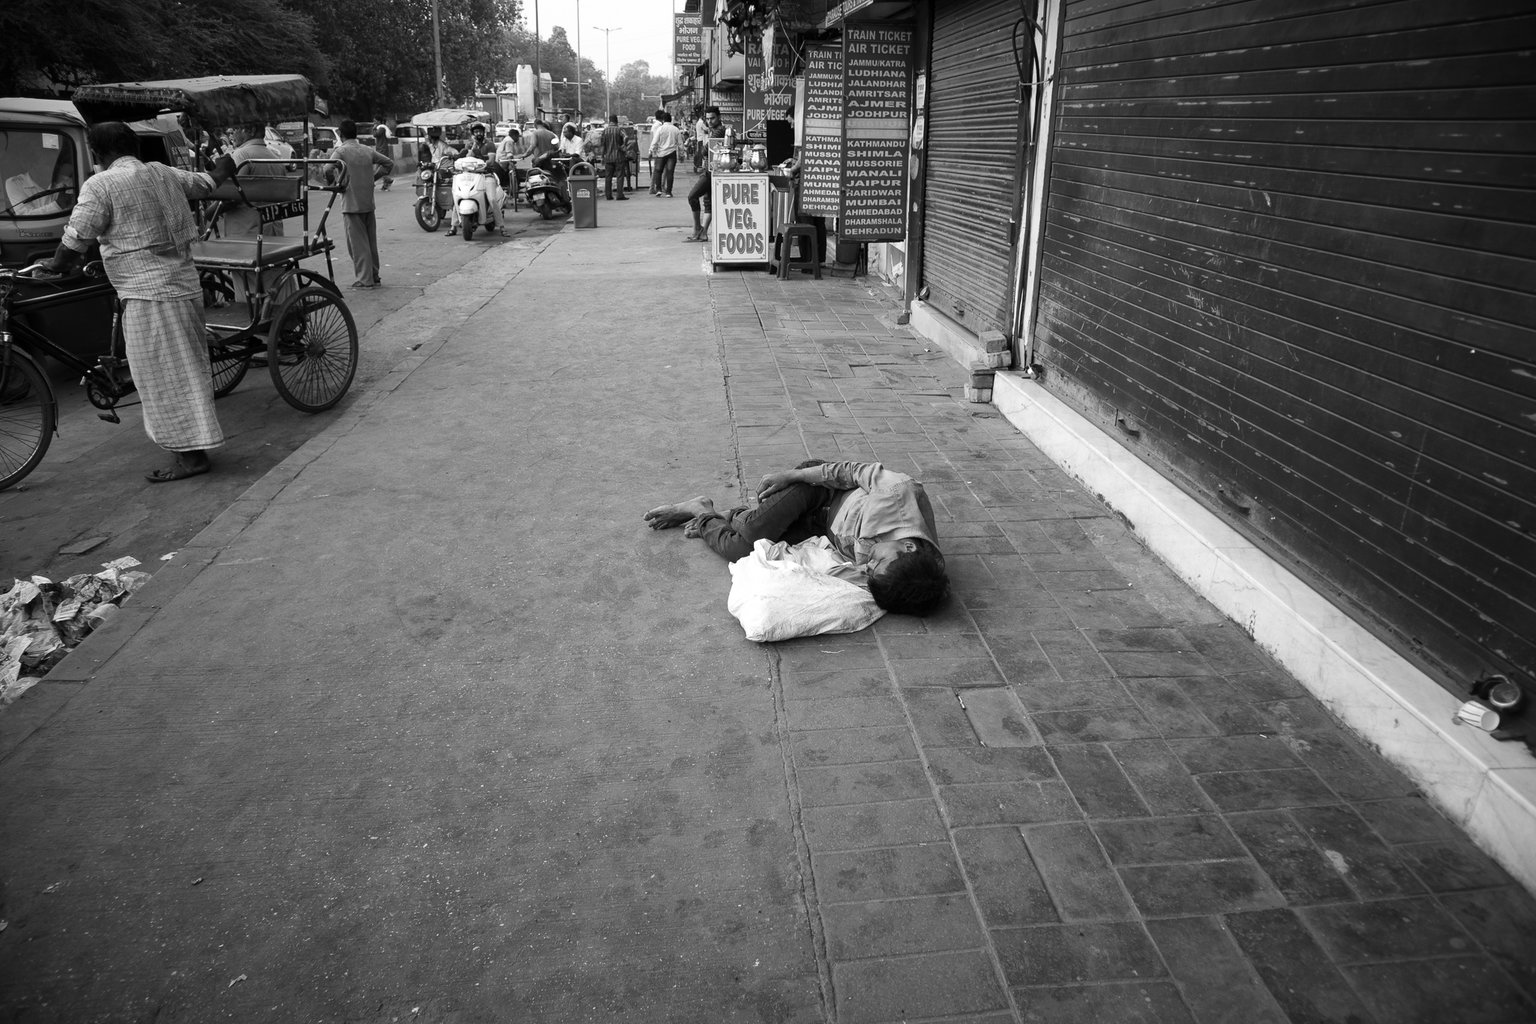 It's sad to see but it's part of Indian life - such poverty…(Paharganj)